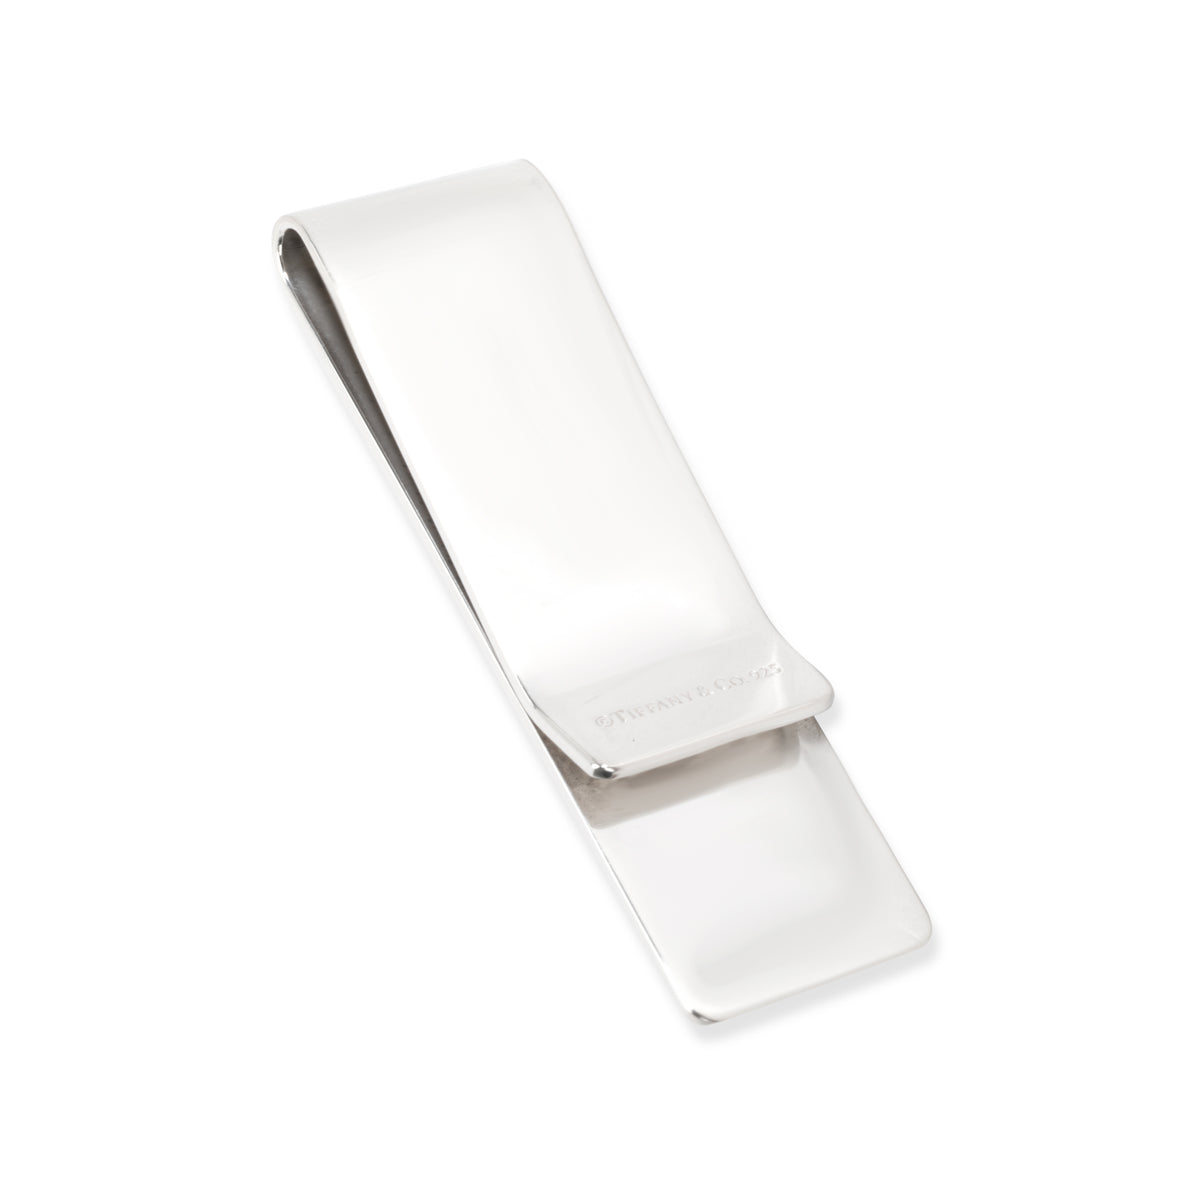 Tiffany & Co. 1837 Money Clip in Sterling Silver Unisex